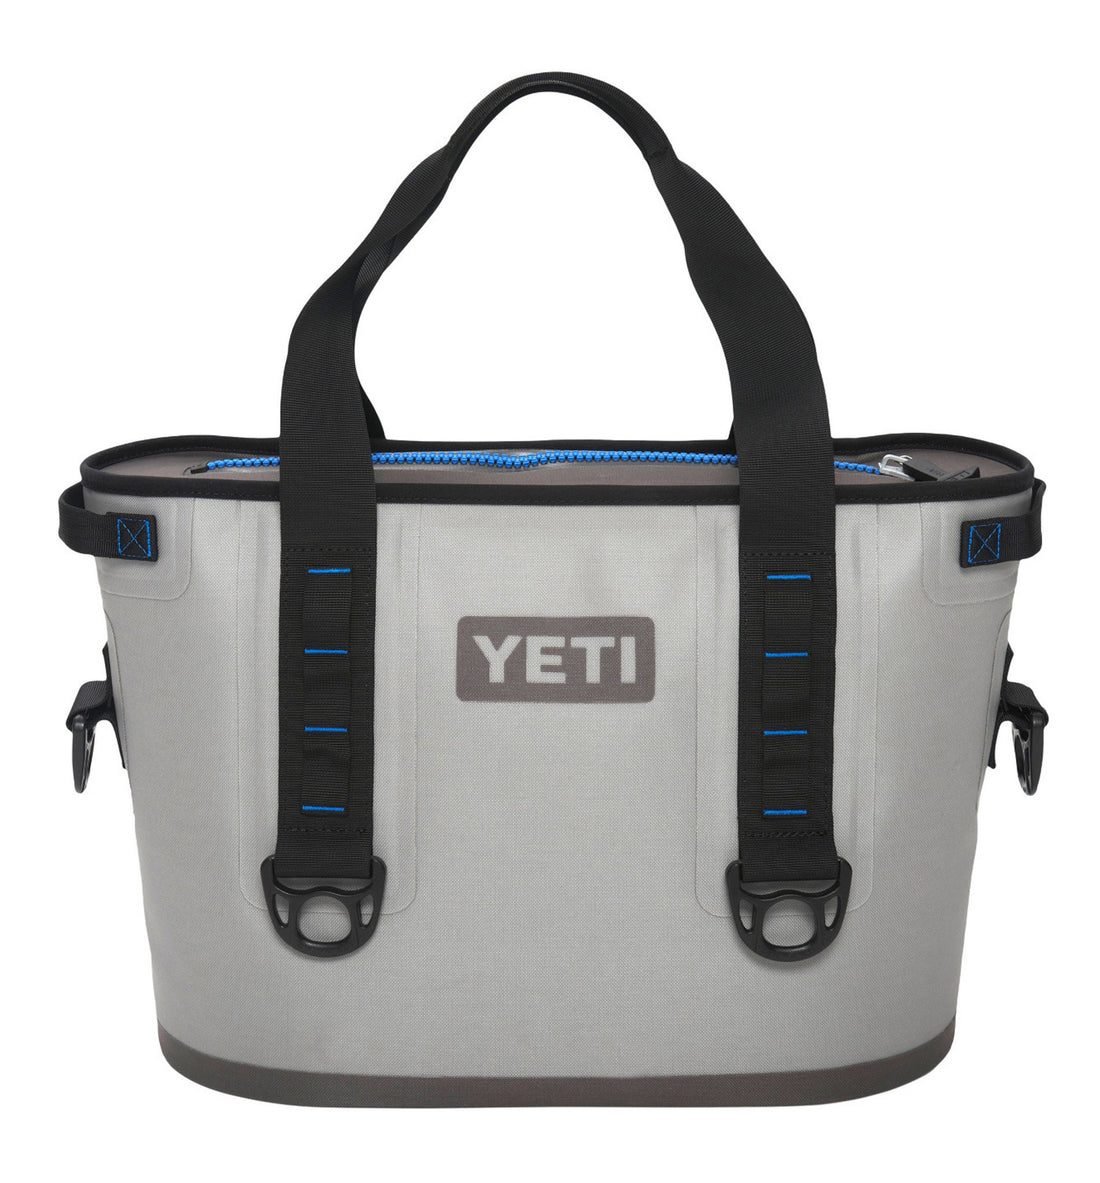 Yeti Hopper 20 - Outdoor Living/Travel - Iron and Resin